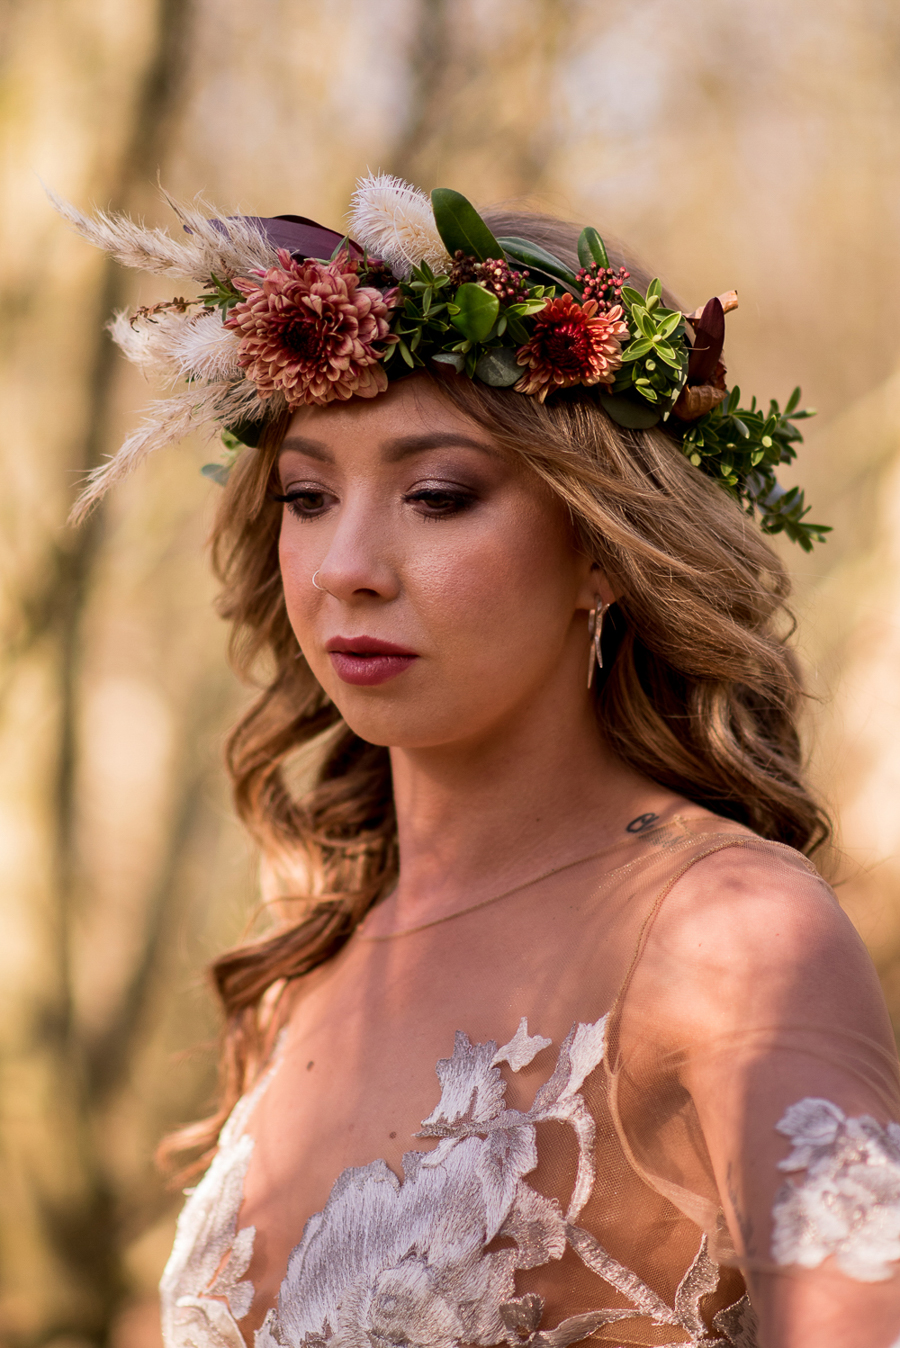 See you at Sunset - a warm autumnal wedding photoshoot with Nicola Belson Photography (25)